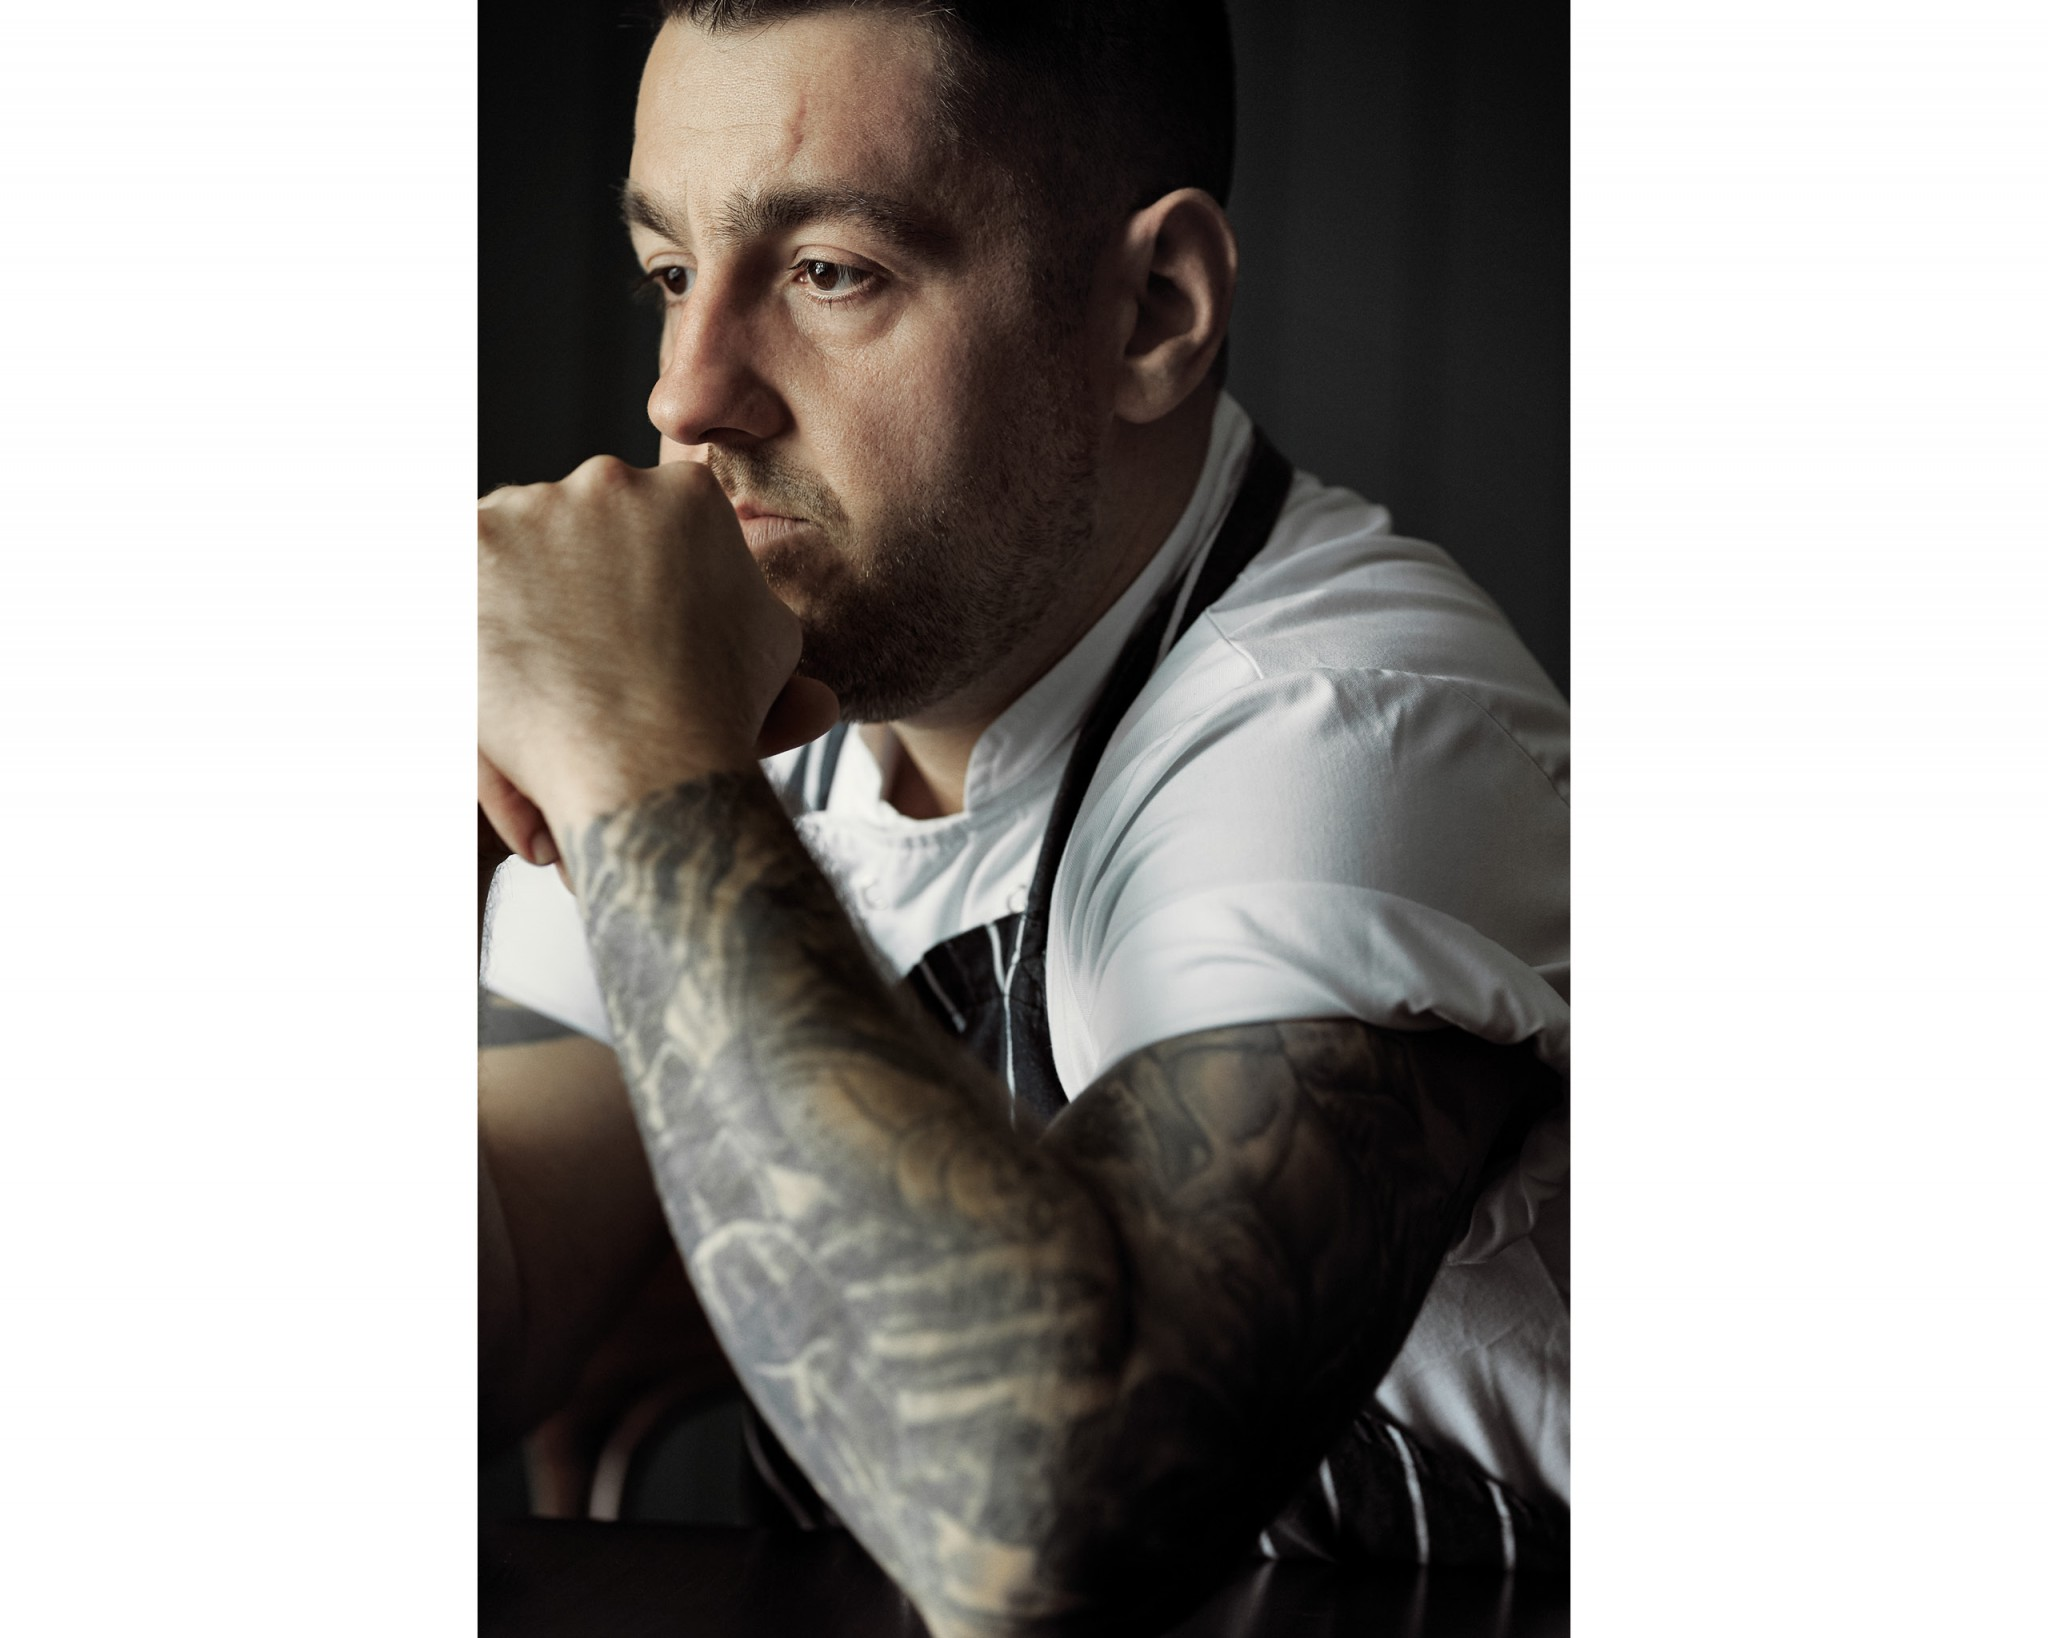 Image of the chef Ross Cochrane